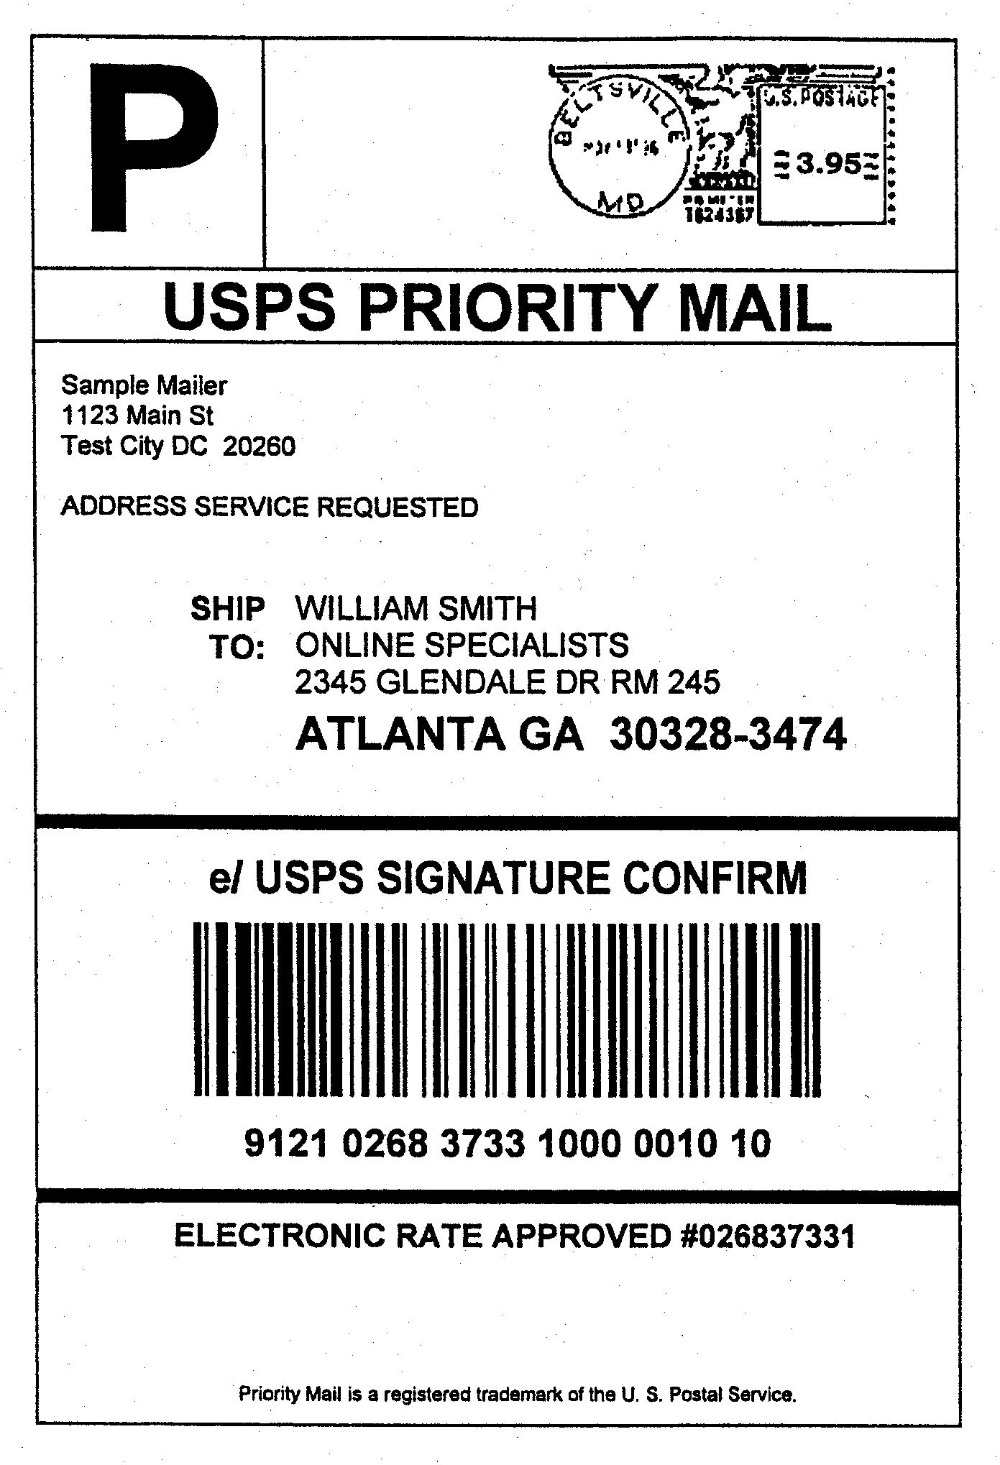 Domestic Mail Manual S Signature Confirmation In Usps Shipping Label Template 10 Professional Template Address Label Template Label Templates Shipping Label